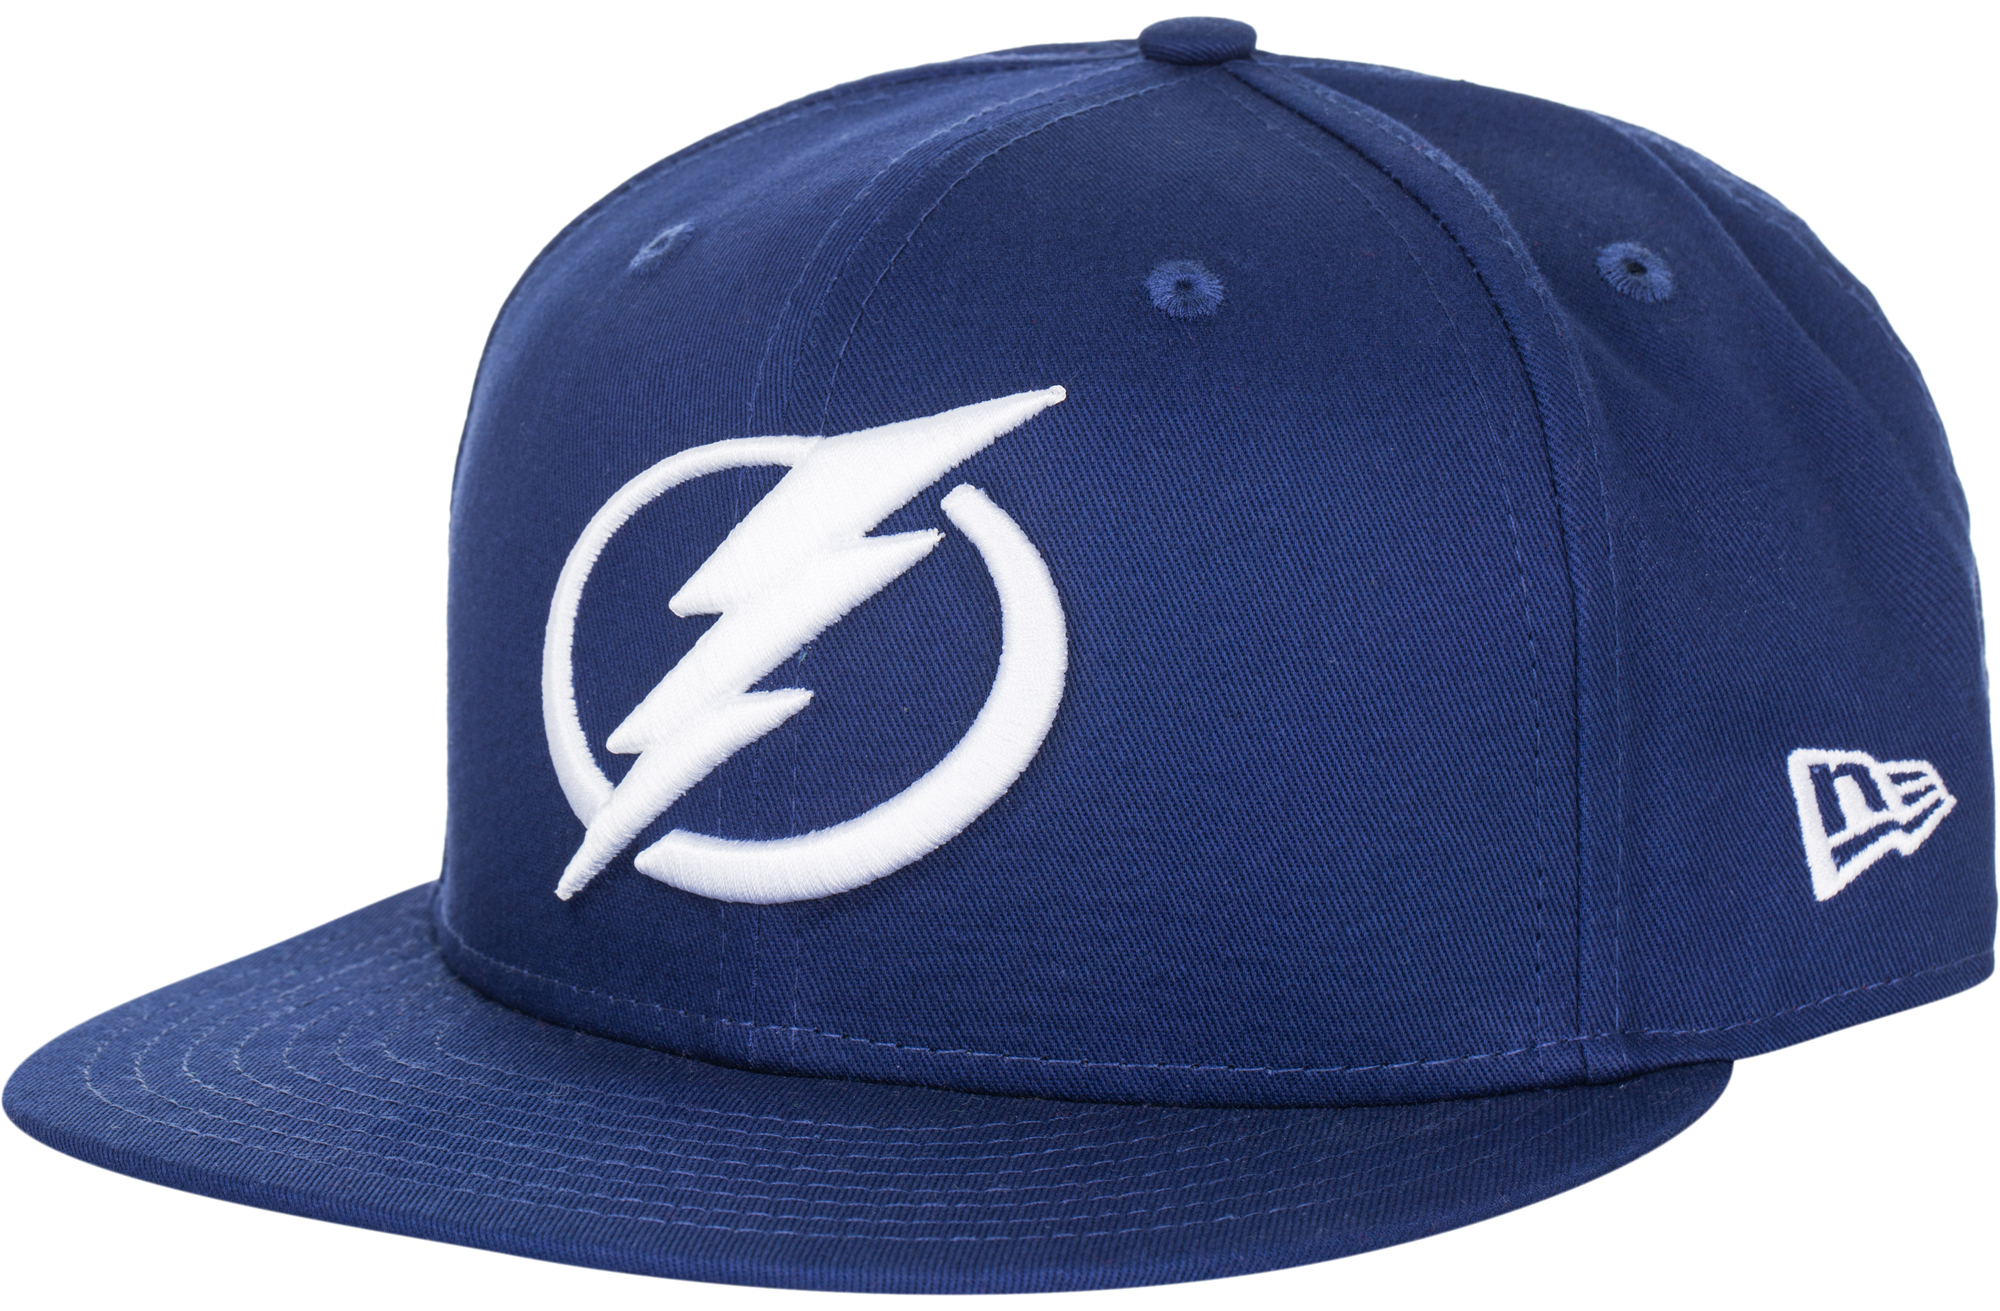 New Era Бейсболка New Era Team Nhl 9Fifty new era бейсболка new era 615 character 9fifty